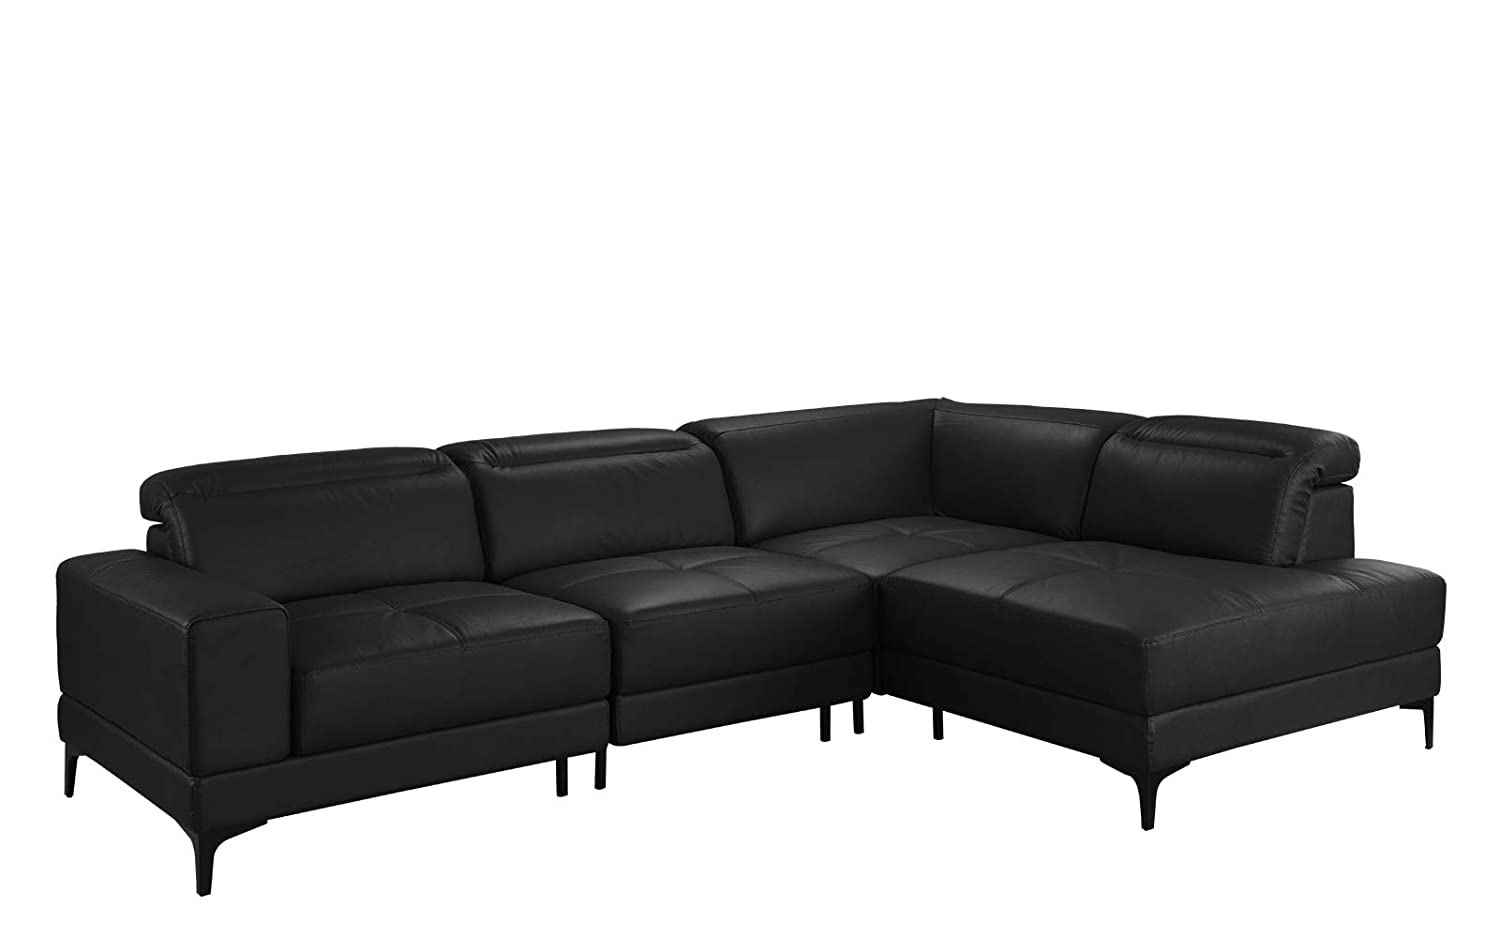 Amazon com large modern leather sectional sofa living room l shape couch black kitchen dining